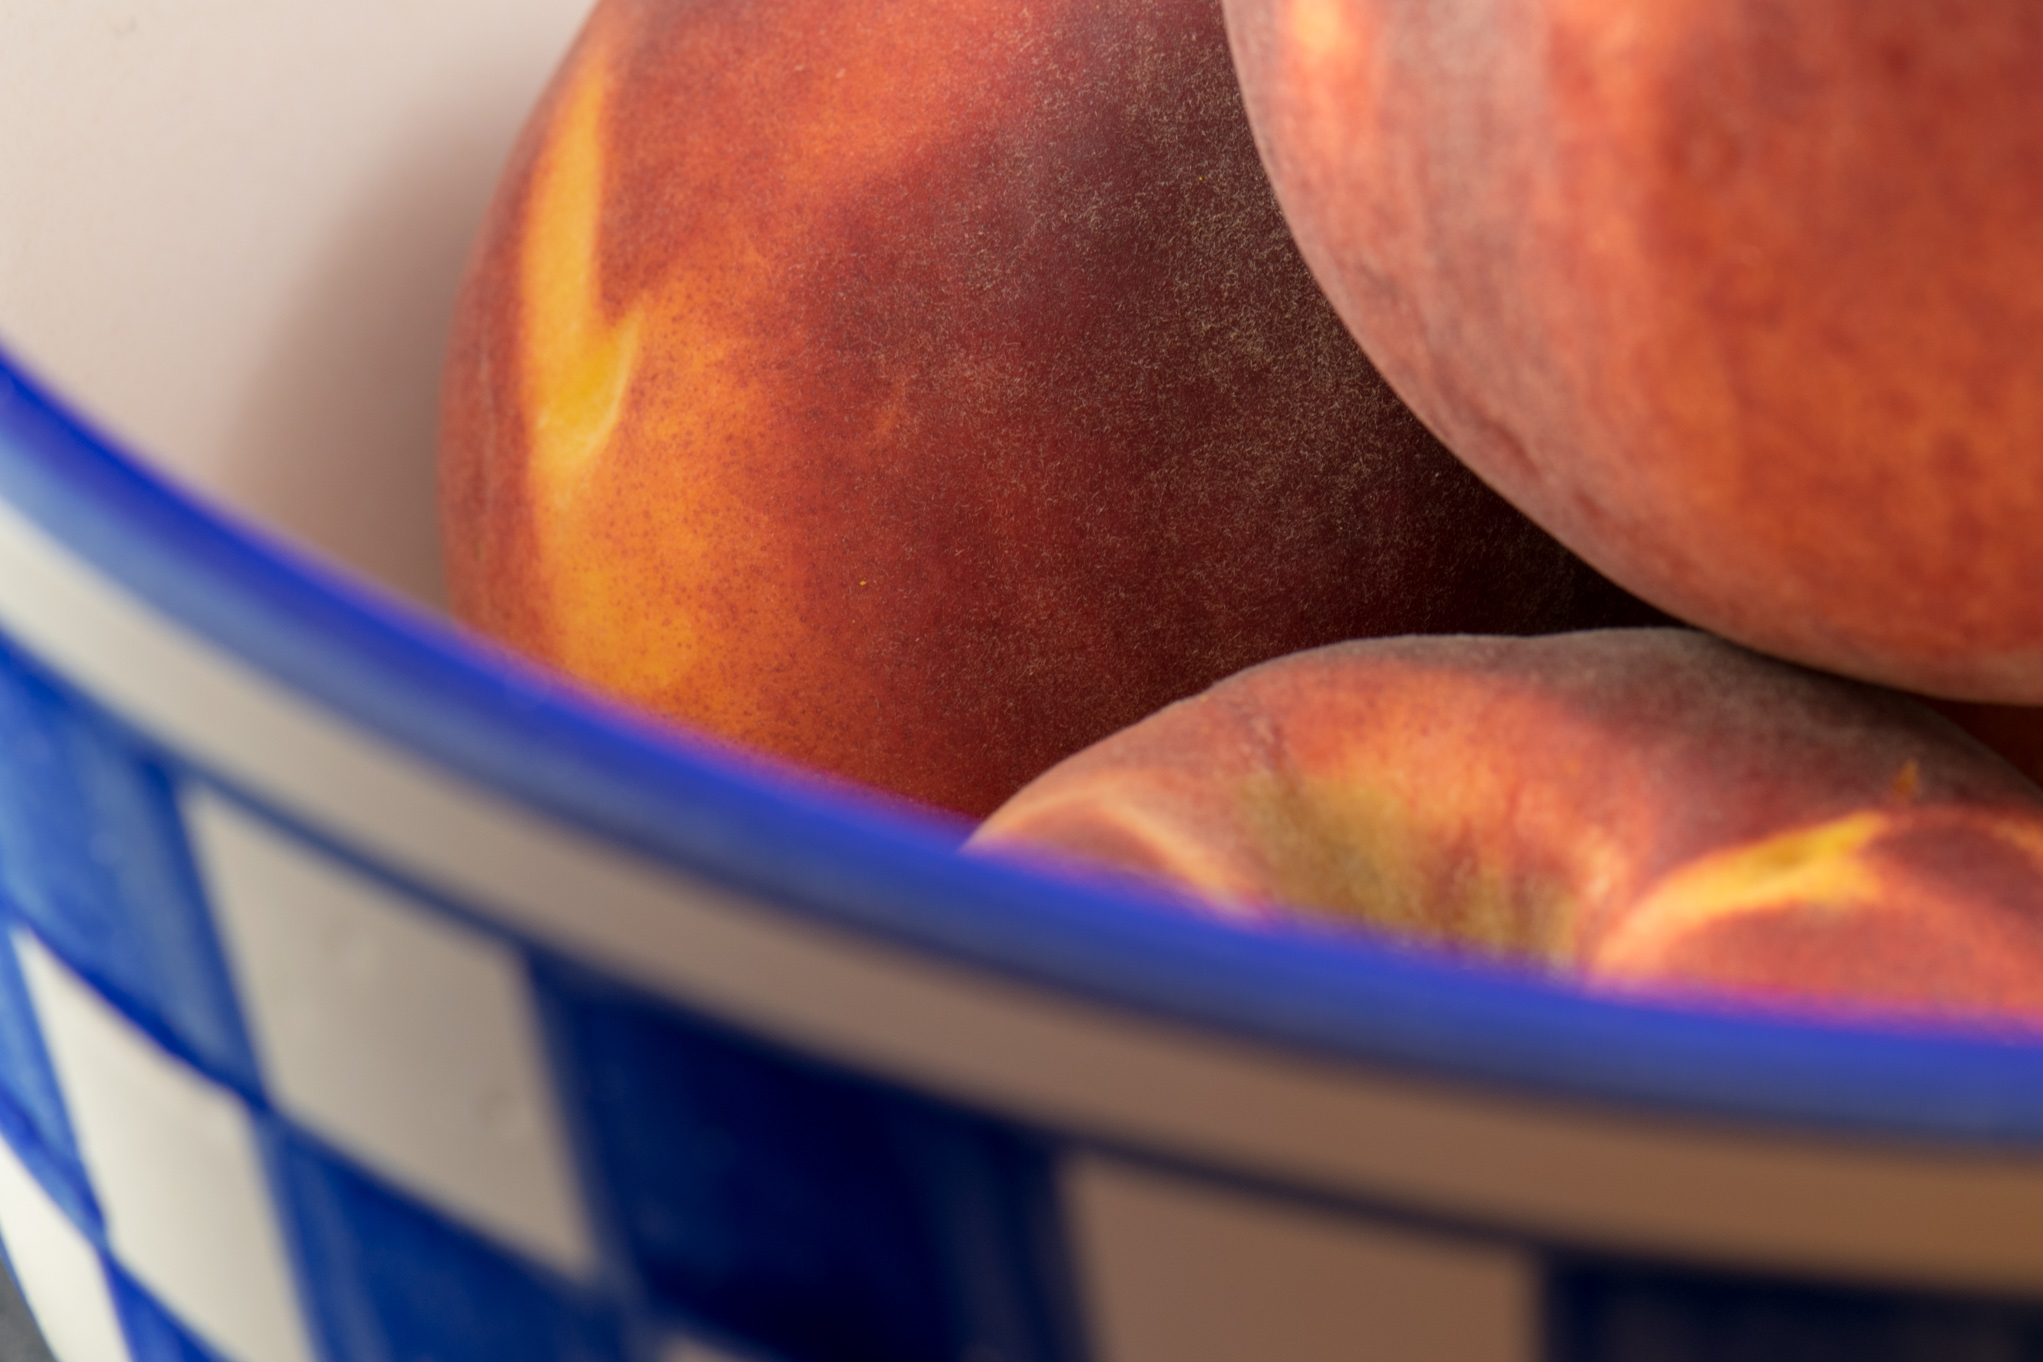 Peach Bowl - food, stilllife, edible - jtmphoto | ello